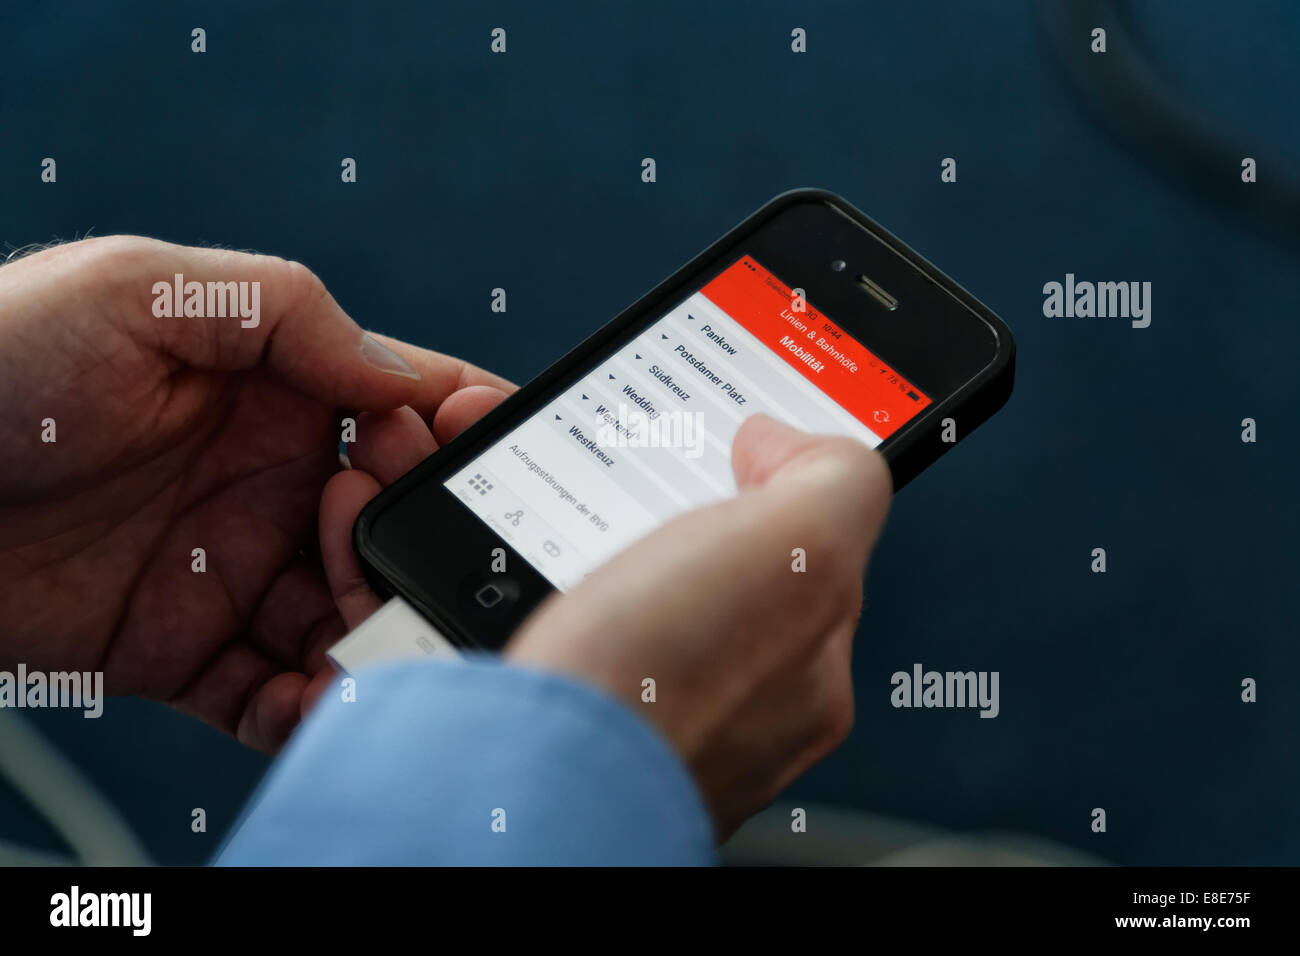 Bahn App S Bahn App Stock Photos S Bahn App Stock Images Alamy